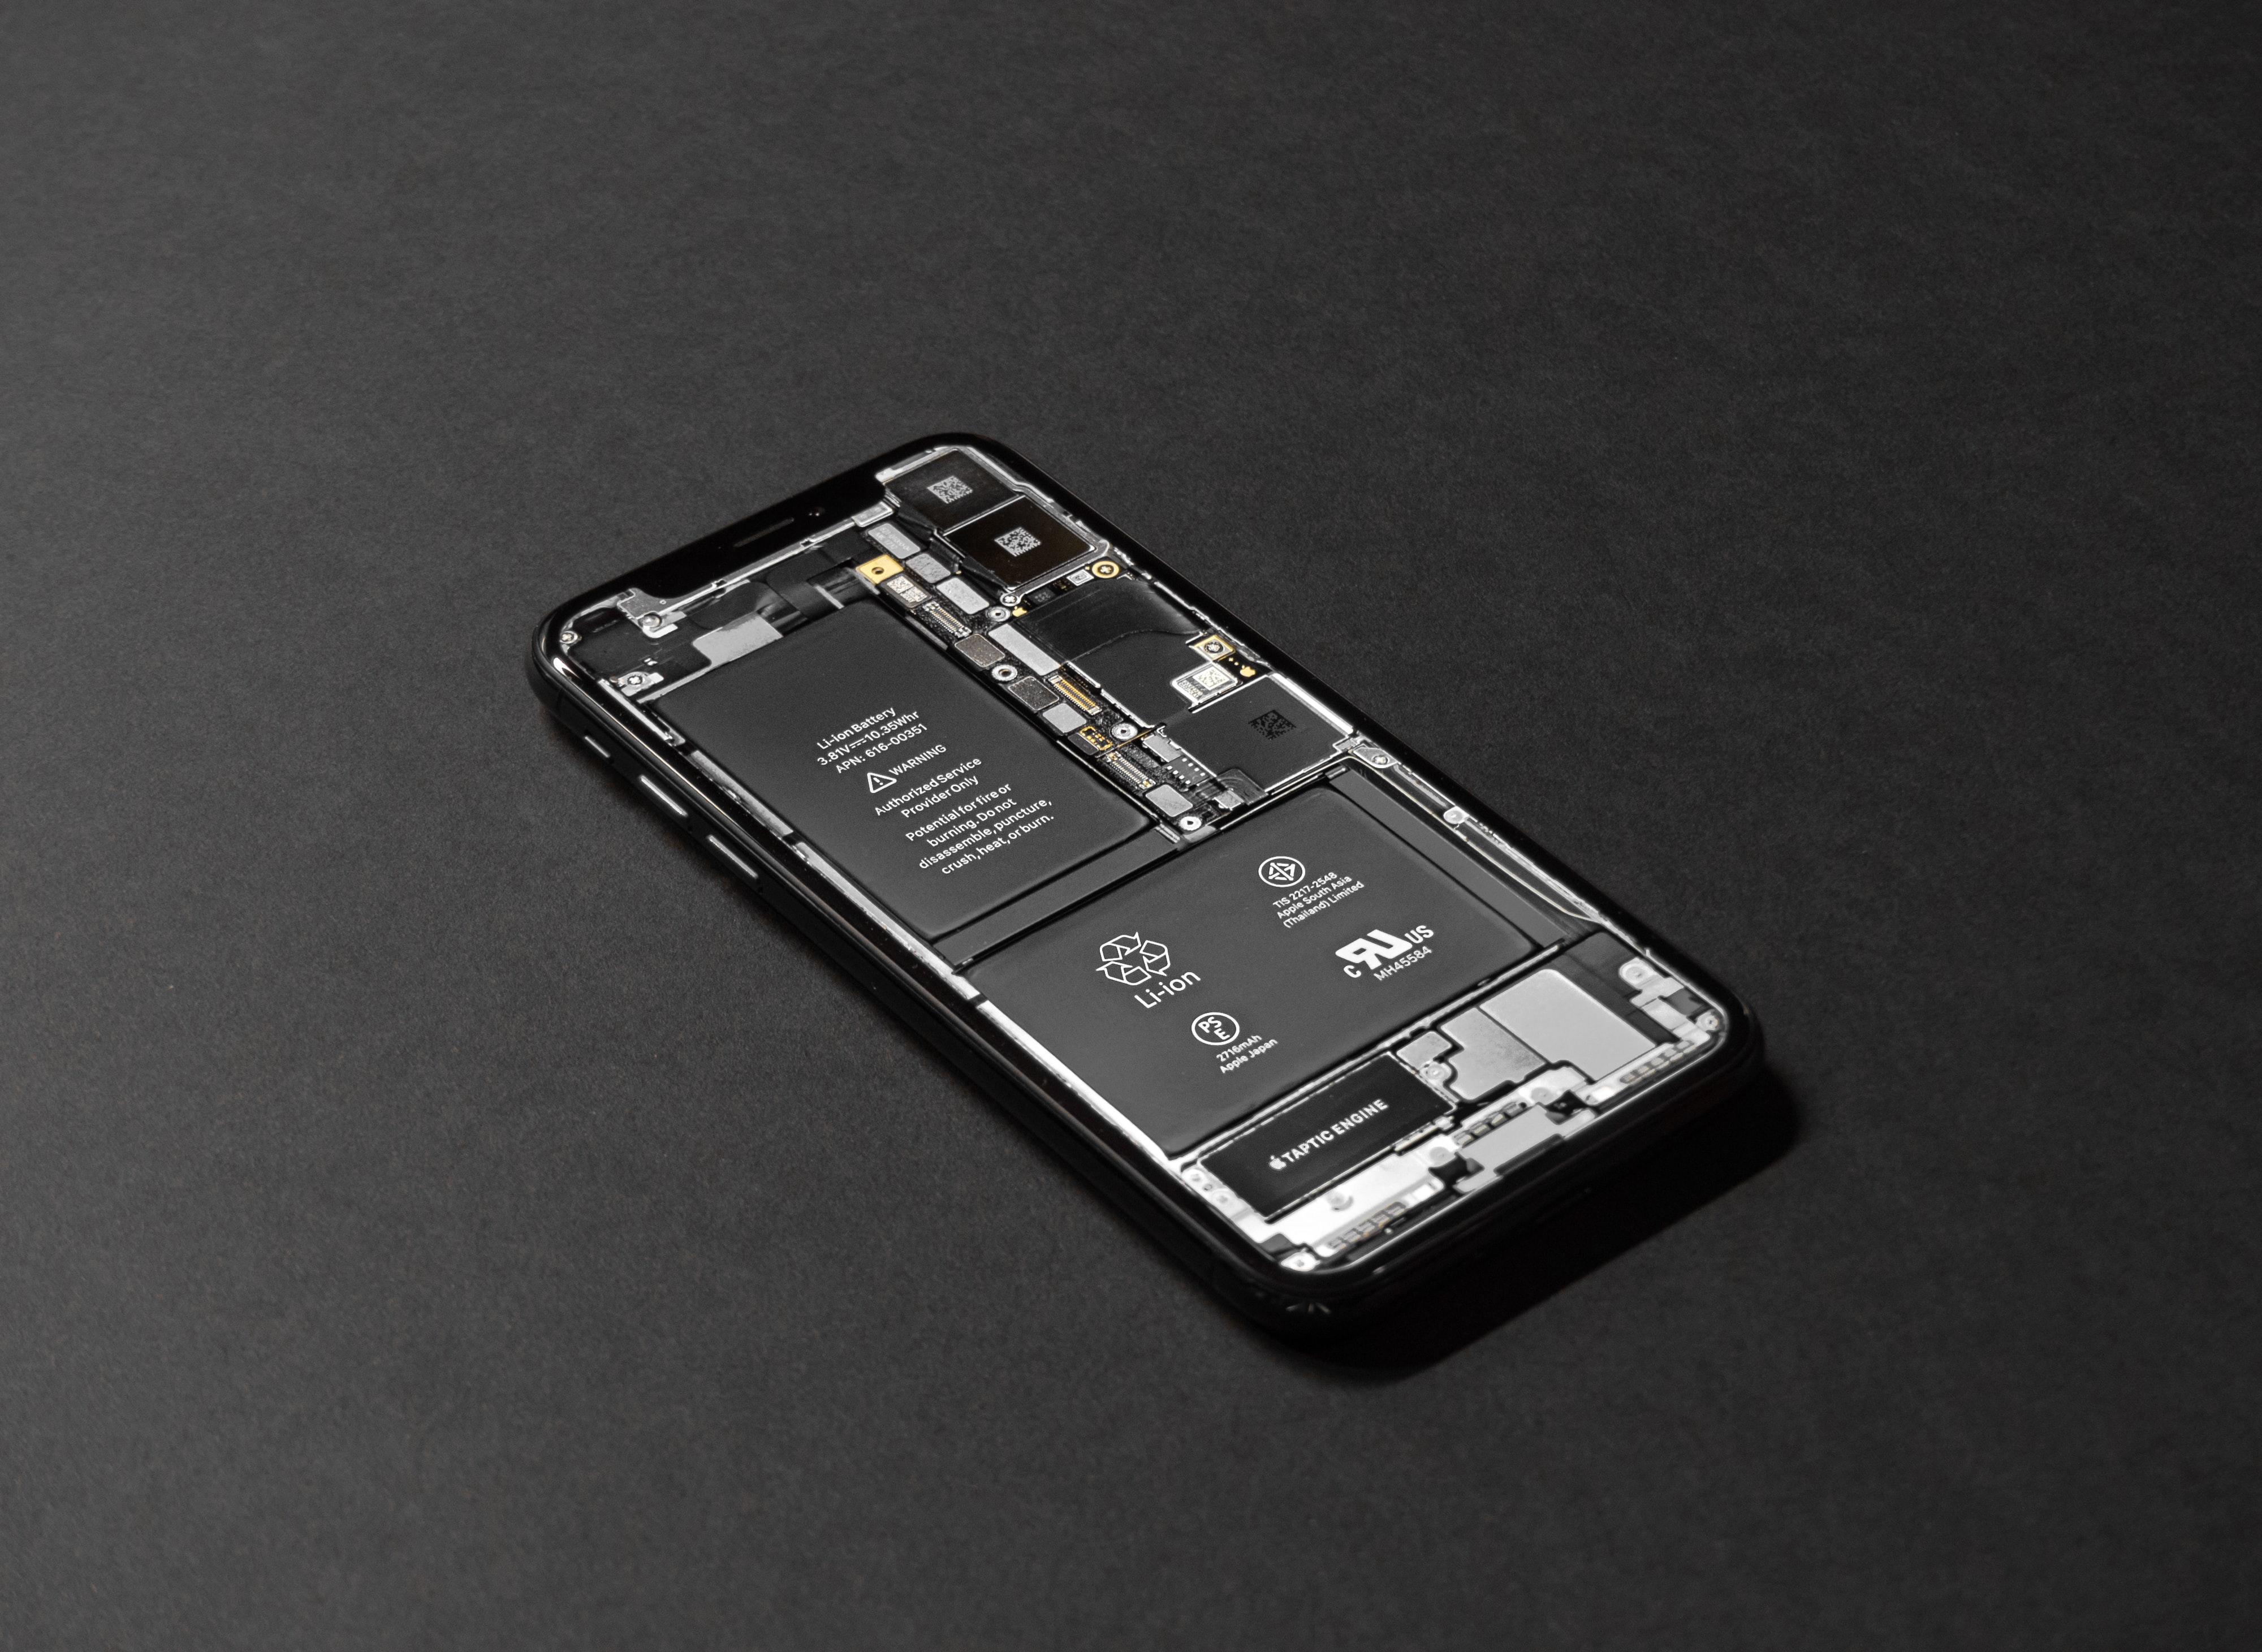 Inner components of an iPhone X